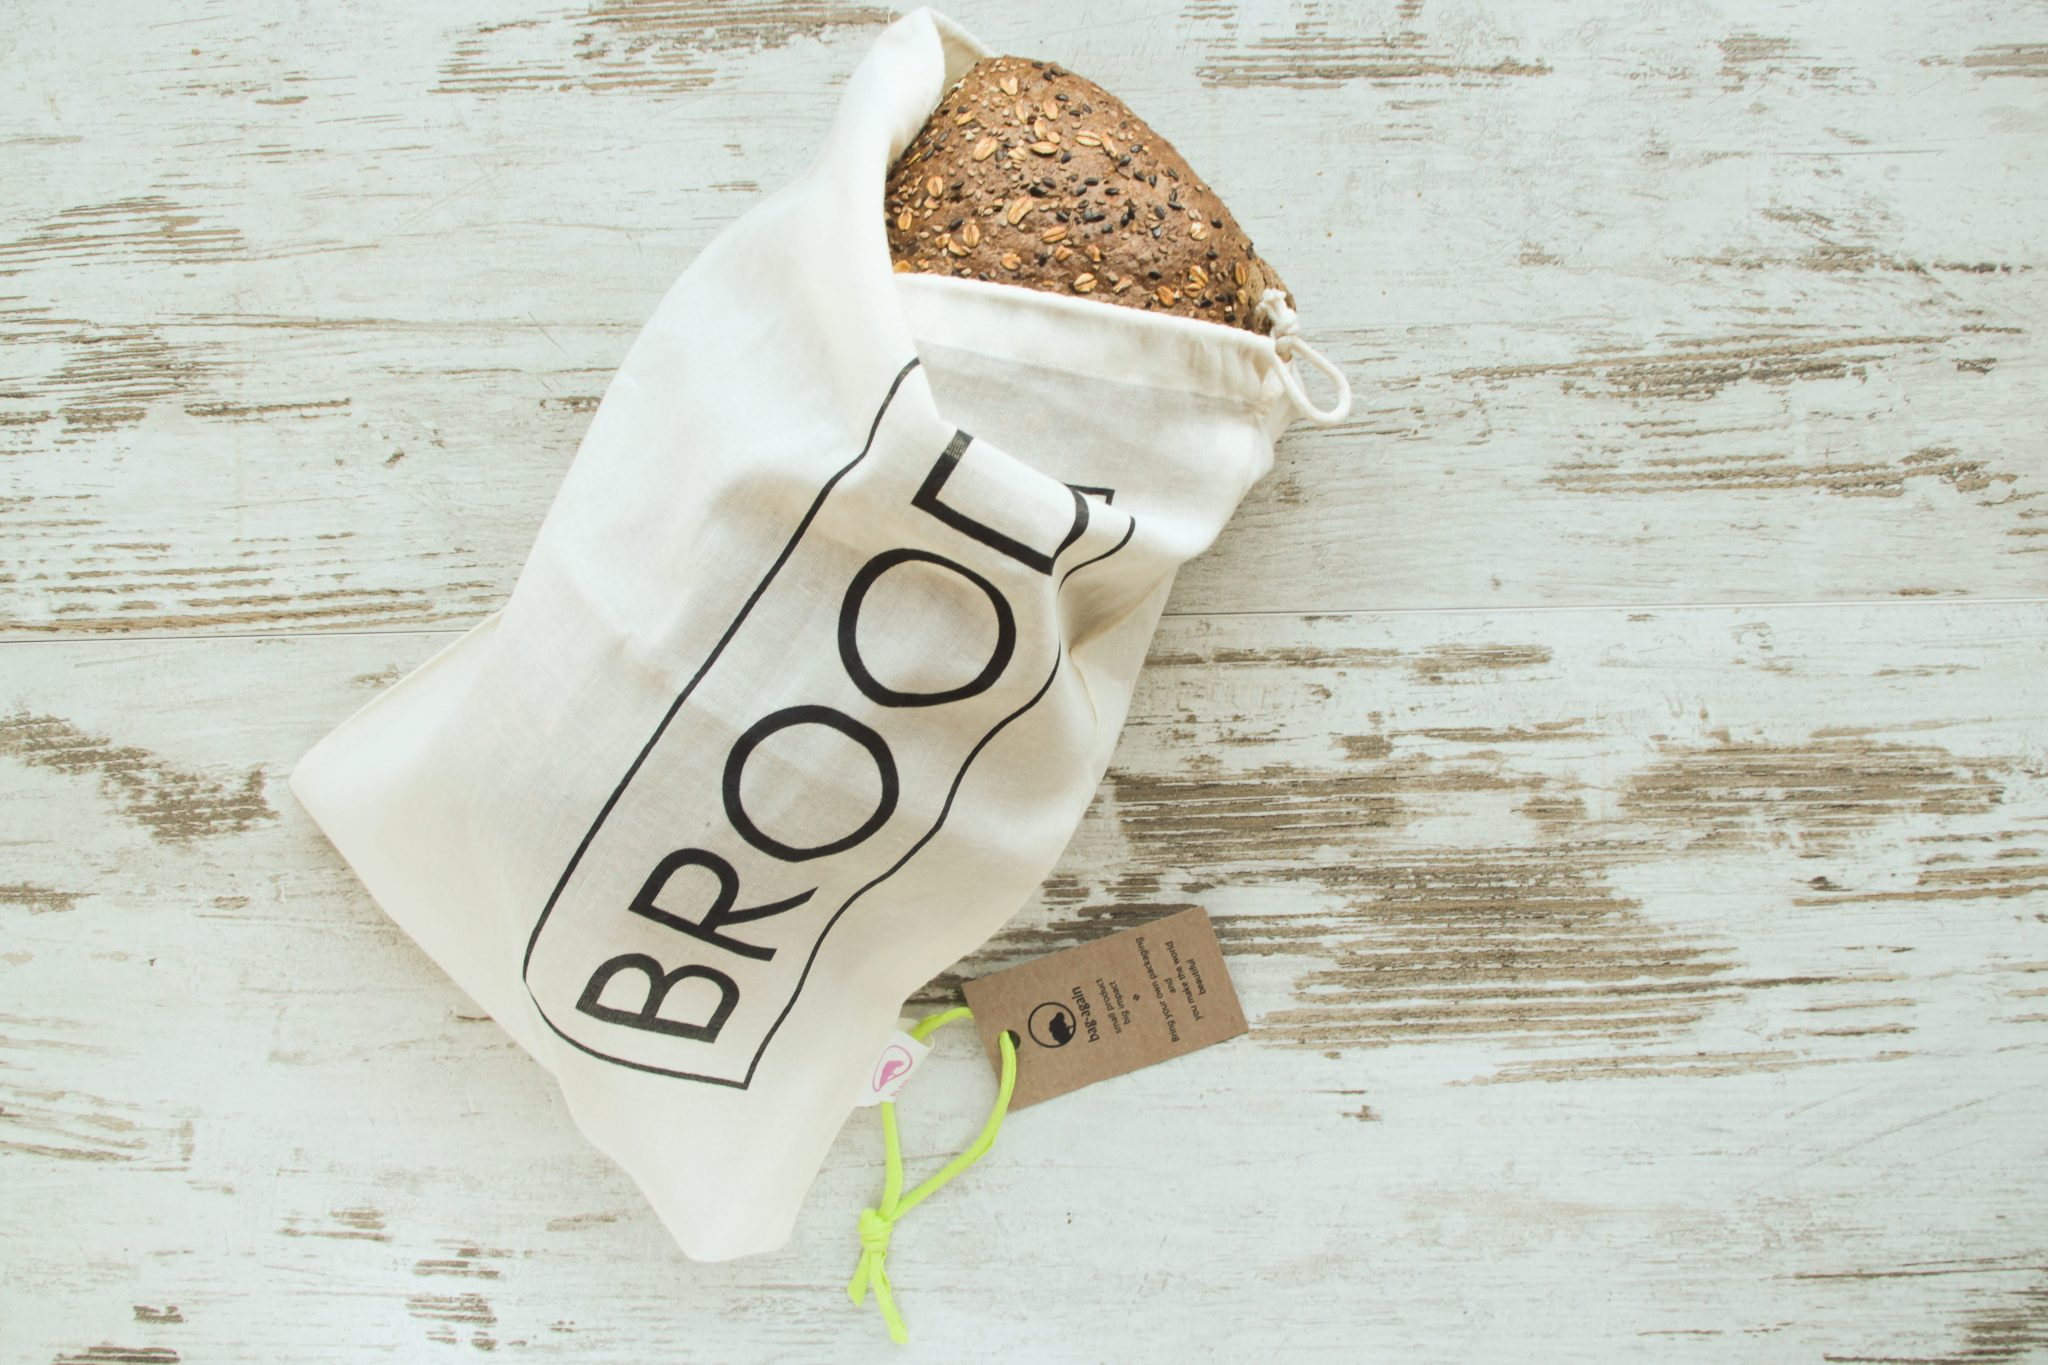 broodzak organic cotton, bag-again broodzak, breadbag, biologisch katoen, zero waste shop, zero waste webshop